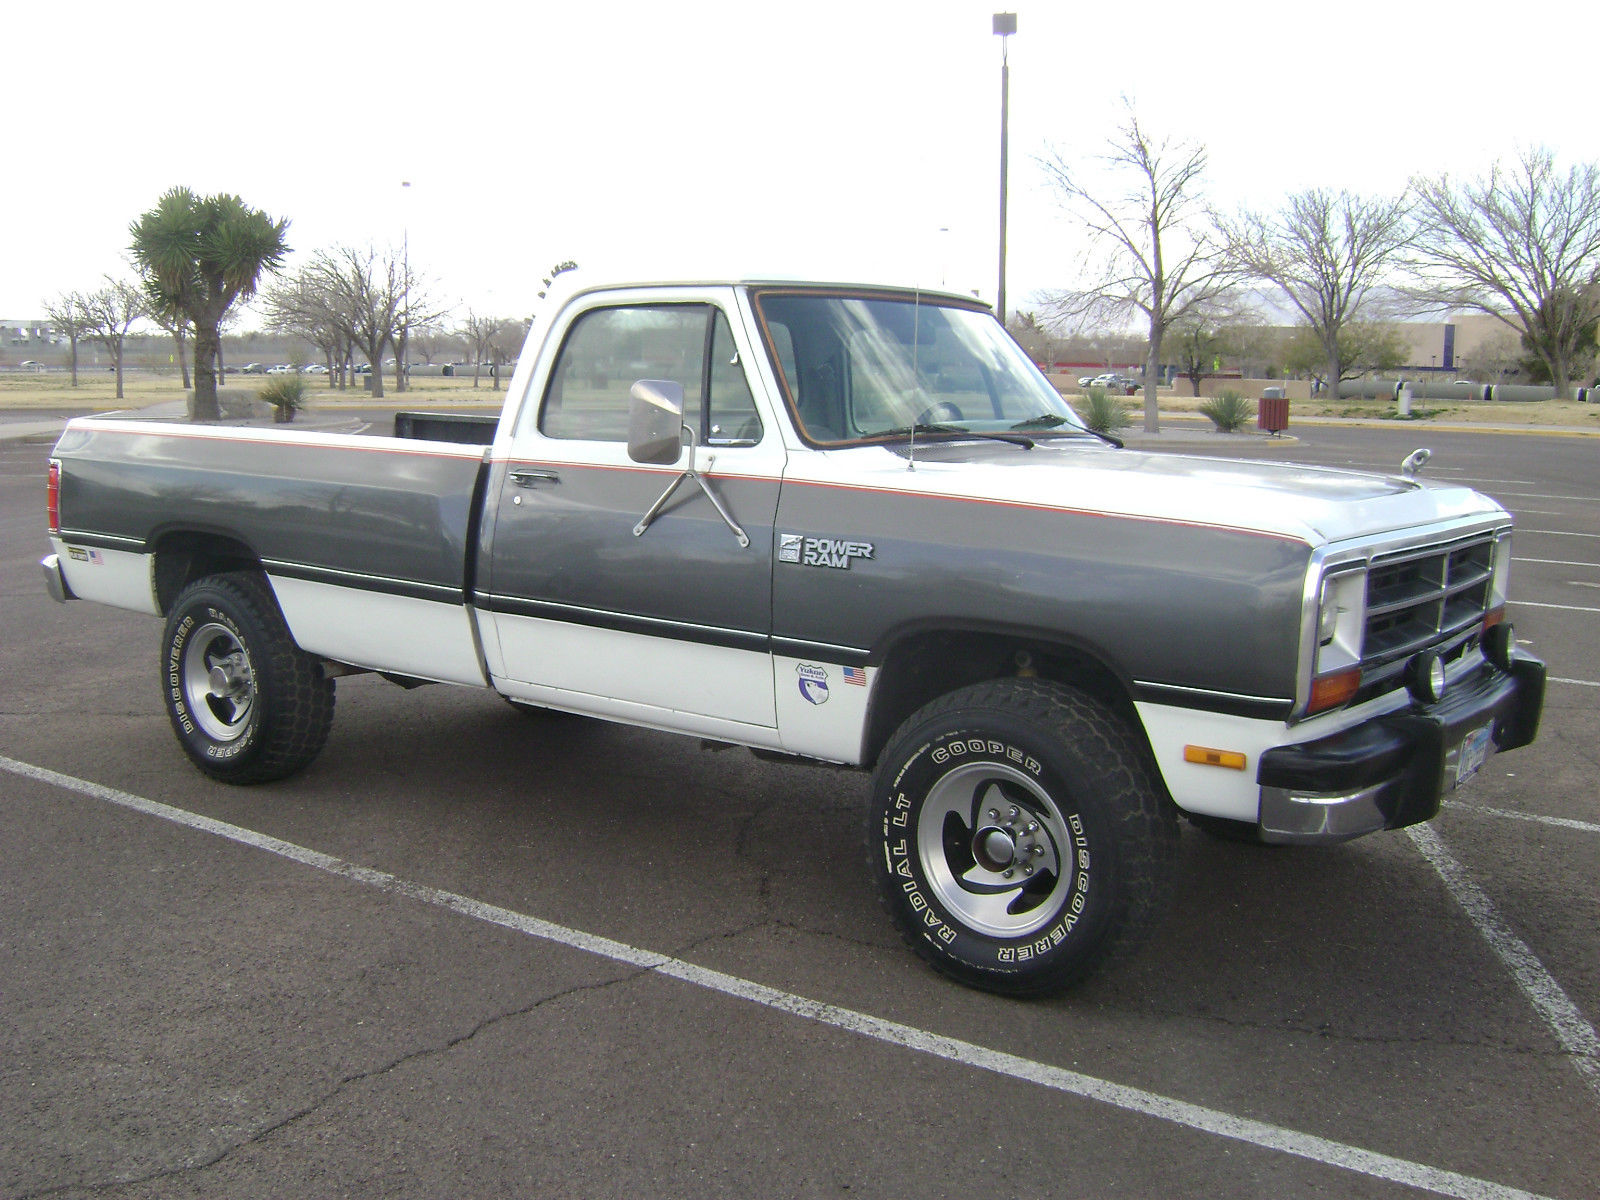 1985 dodge d250 power ram royal se not diesel cummins. Black Bedroom Furniture Sets. Home Design Ideas